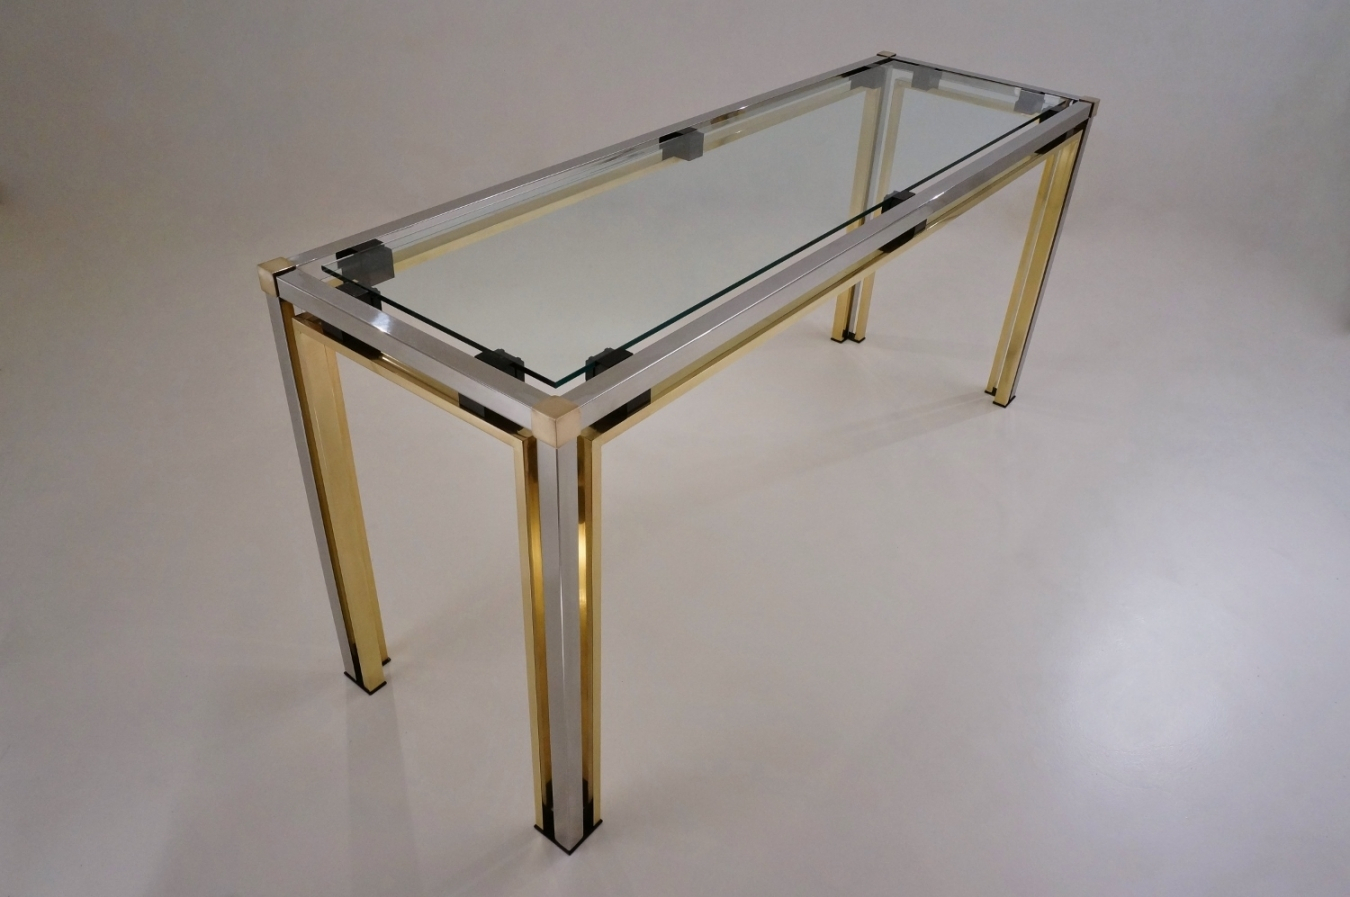 Romeo Rega Console Table | Trendfirst in Mix Patina Metal Frame Console Tables (Image 22 of 30)